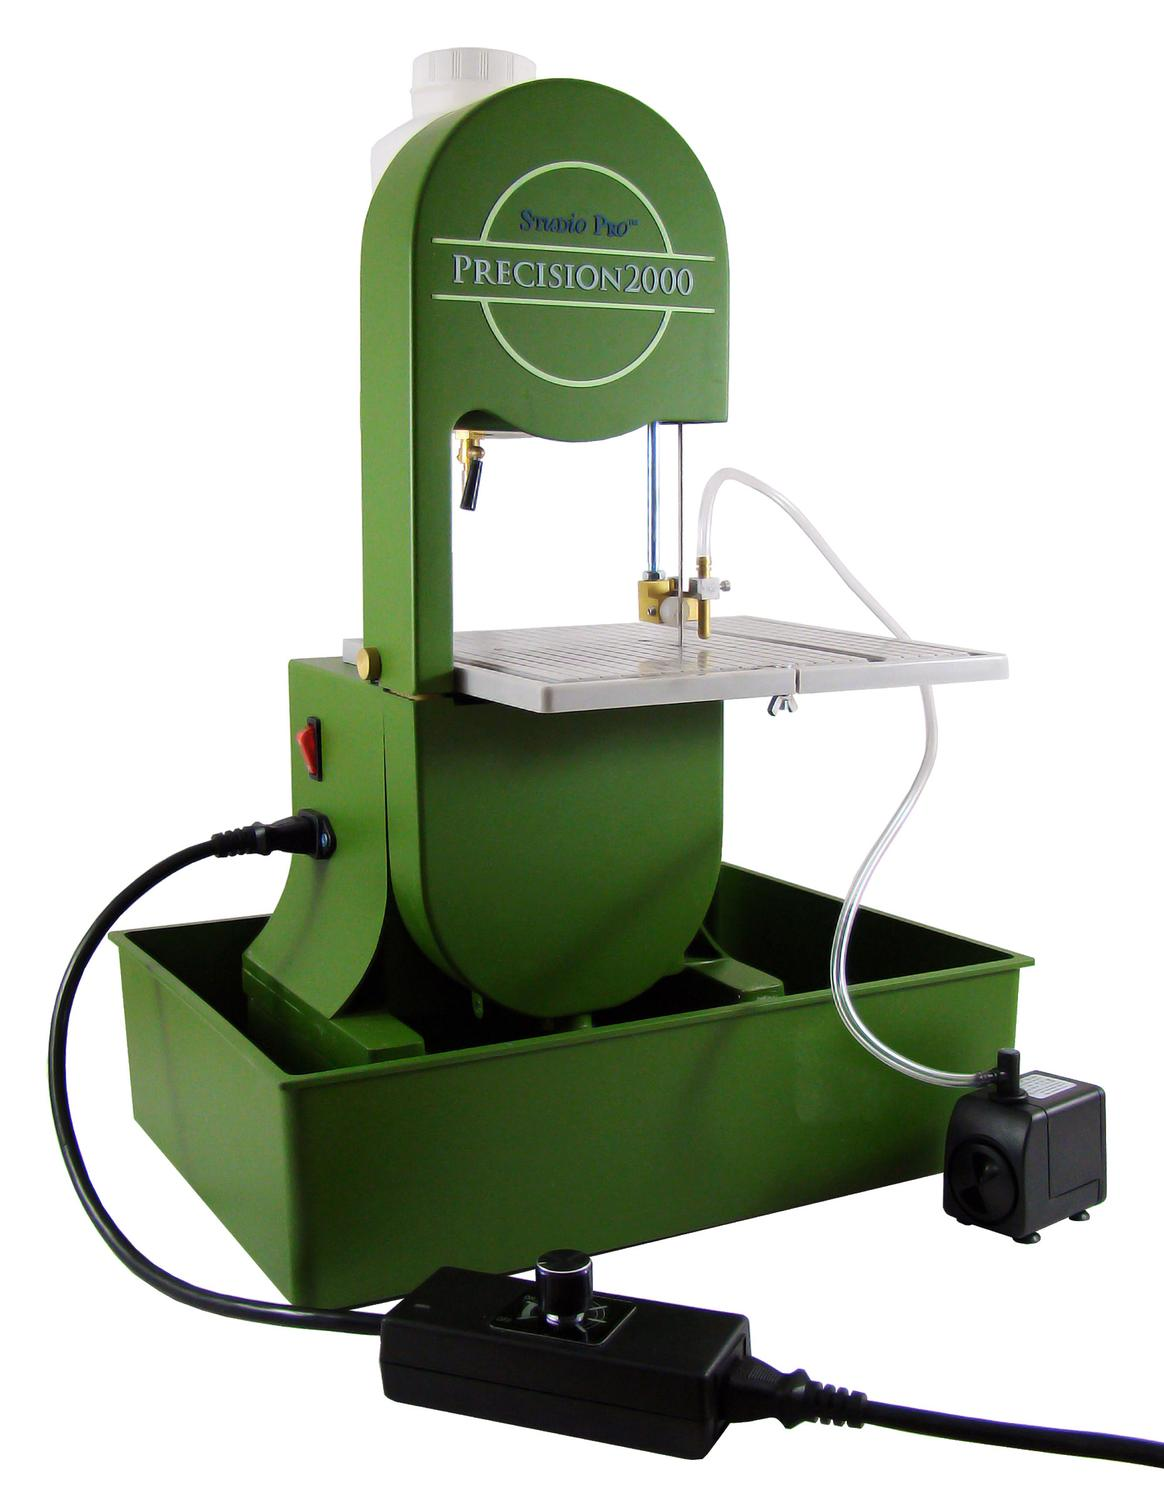 Precision 2000 Deluxe Bandsaw Diamond Tech